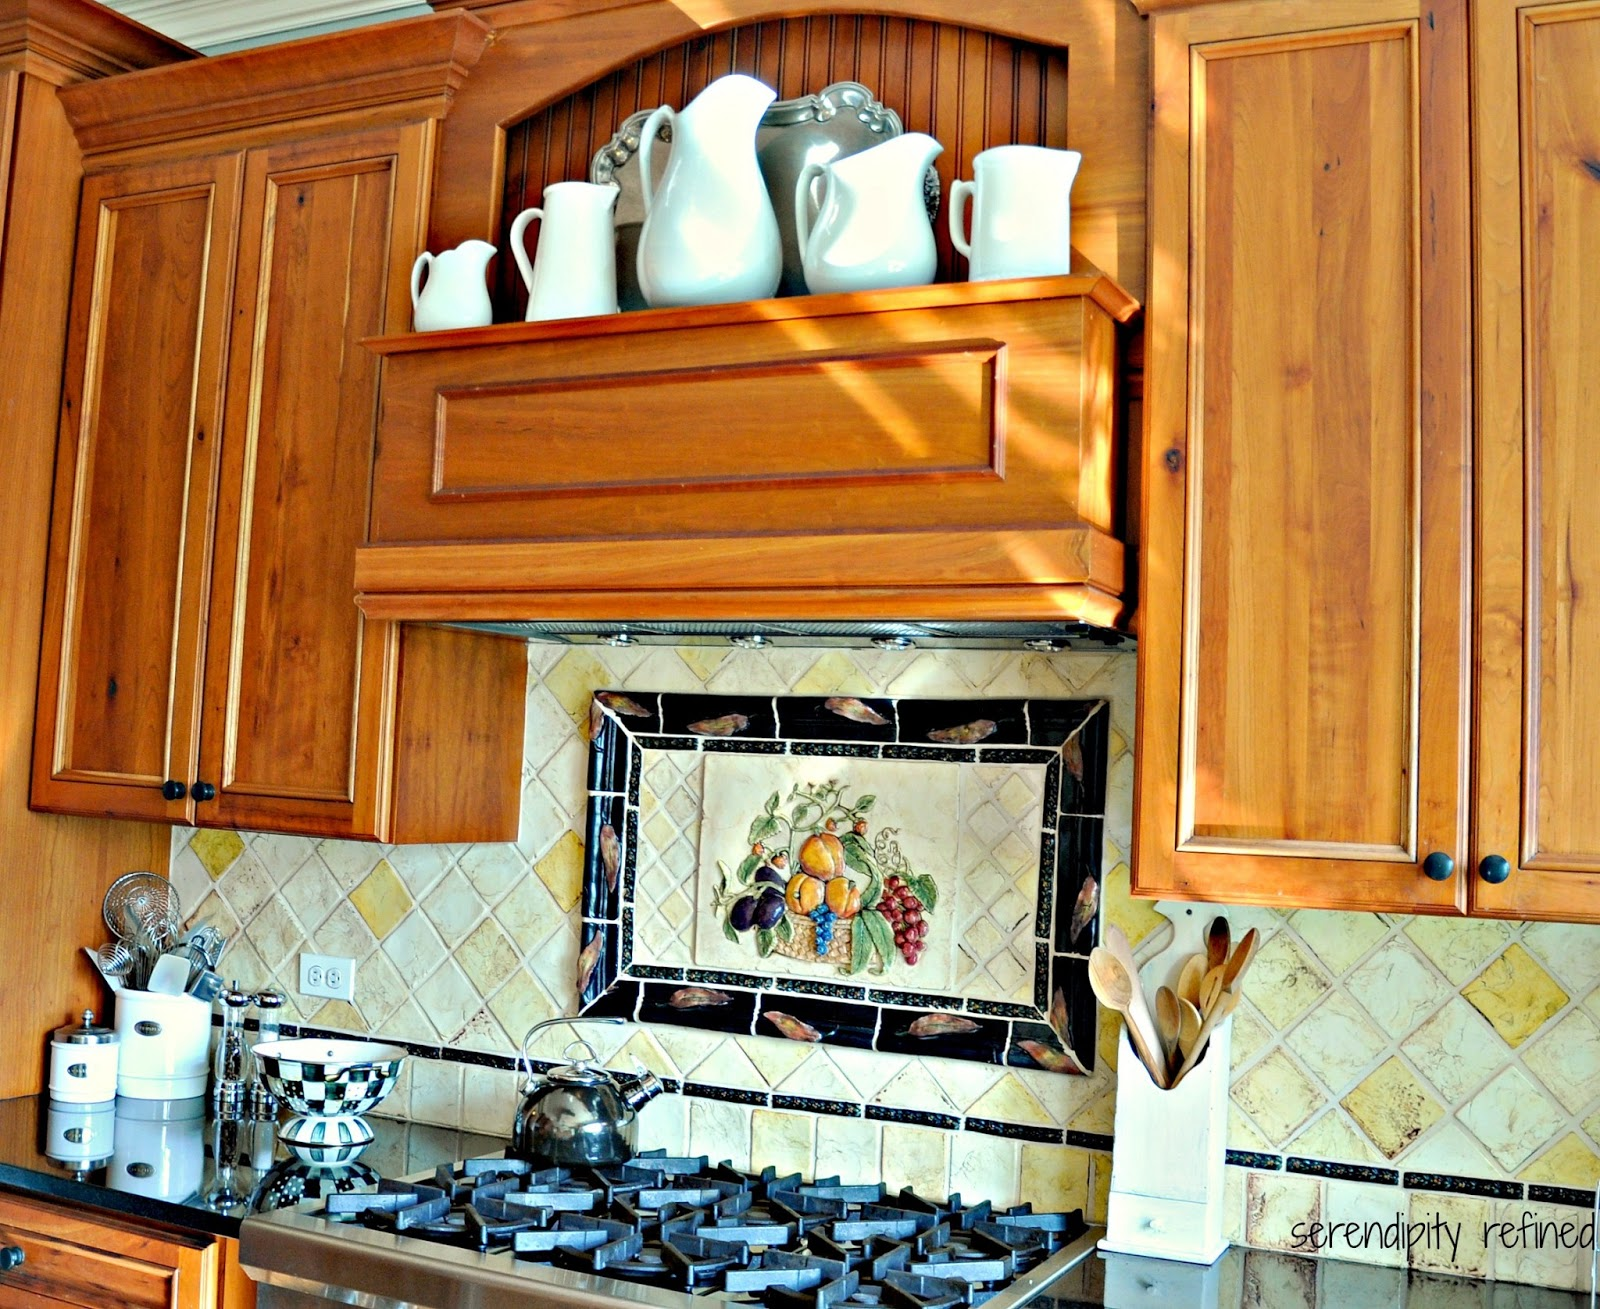 Uncategorized Hand Painted Tiles For Kitchen Backsplash serendipity refined blog my kitchen back splash hand painted ceramic tile formed raku